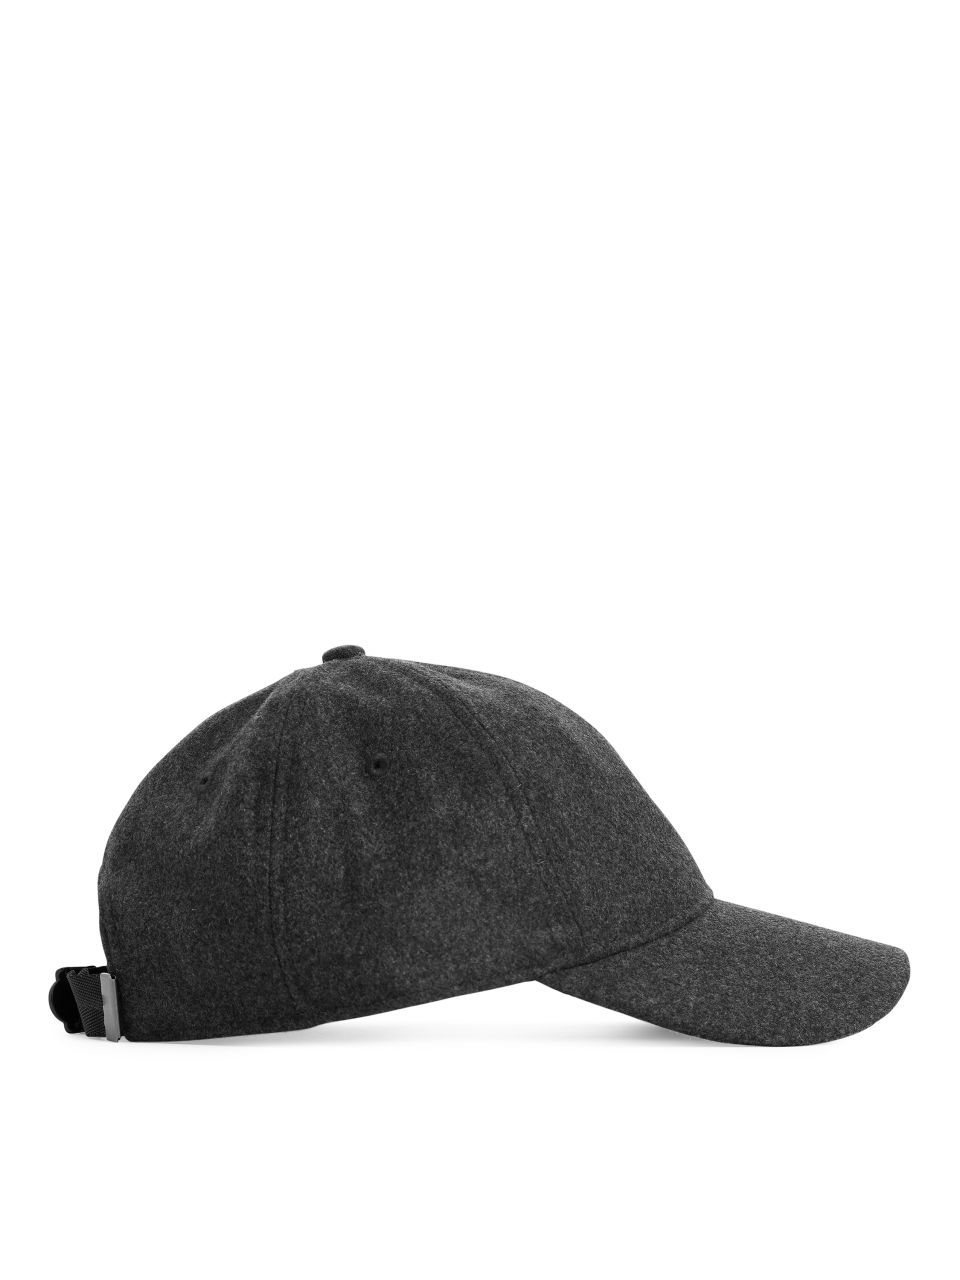 1f0cf1511a584 Recycled Wool Cap in 2019   Products   Grey bags, Bag accessories, Cap